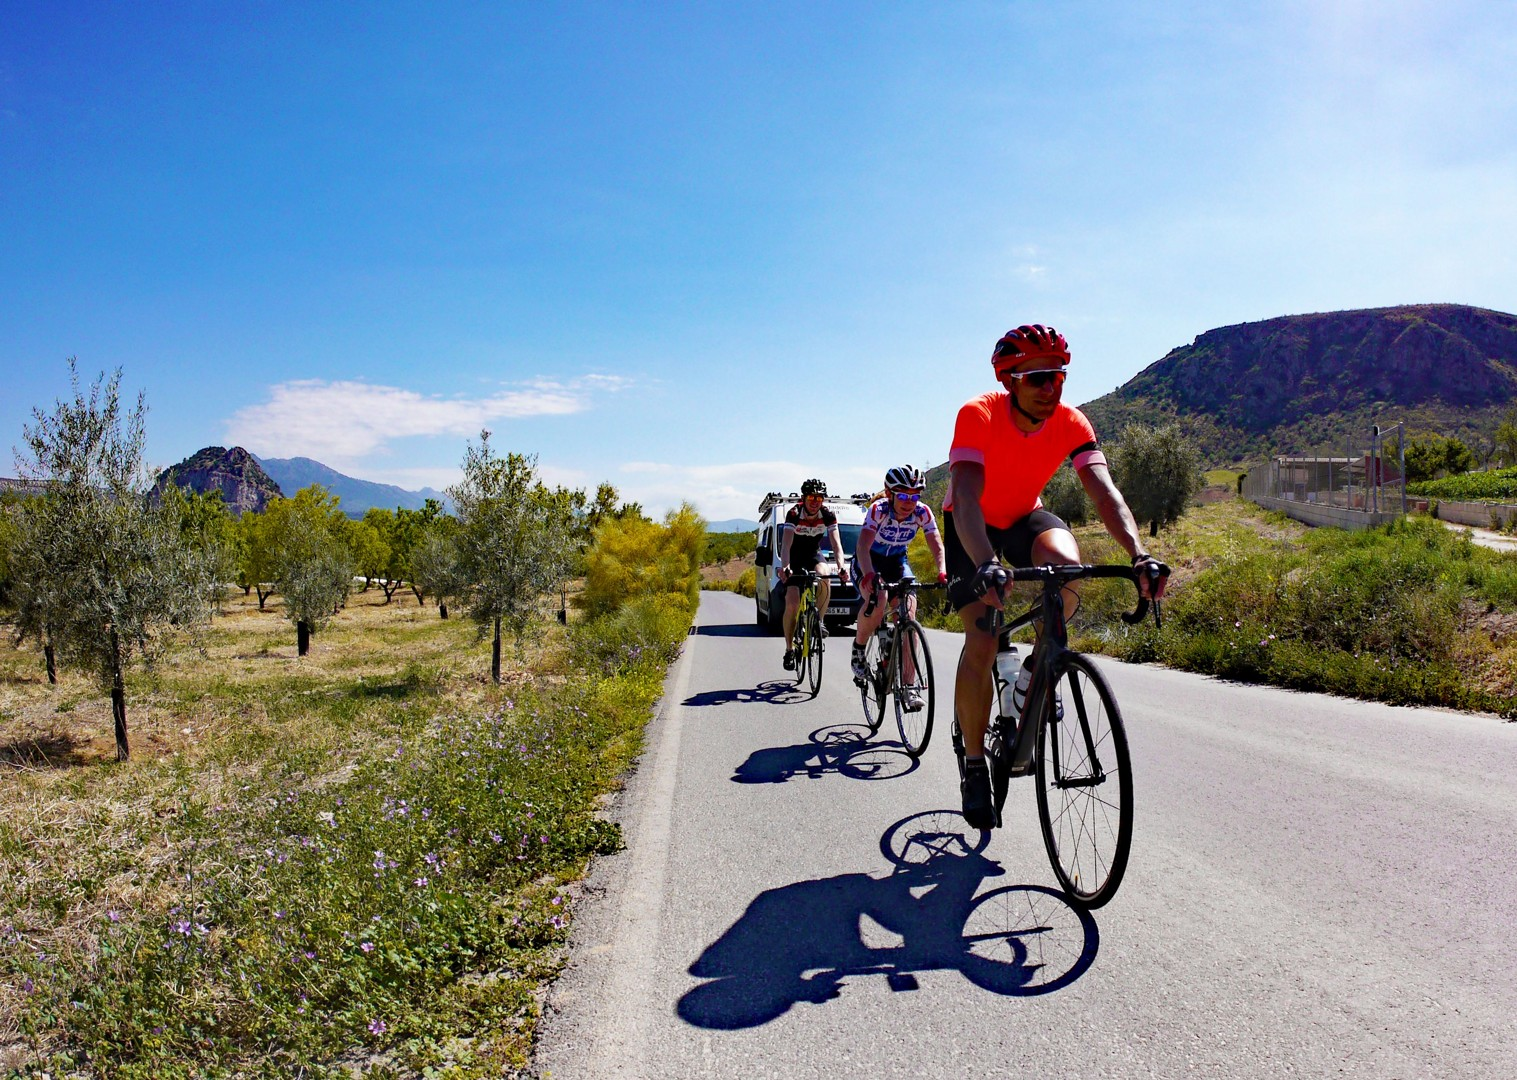 road-cycling-holiday-del-norte-al-sur.jpg - Spain - Basque Country to Andalucia - North to South - 21 Day - Guided Road Cycling Holiday - Road Cycling